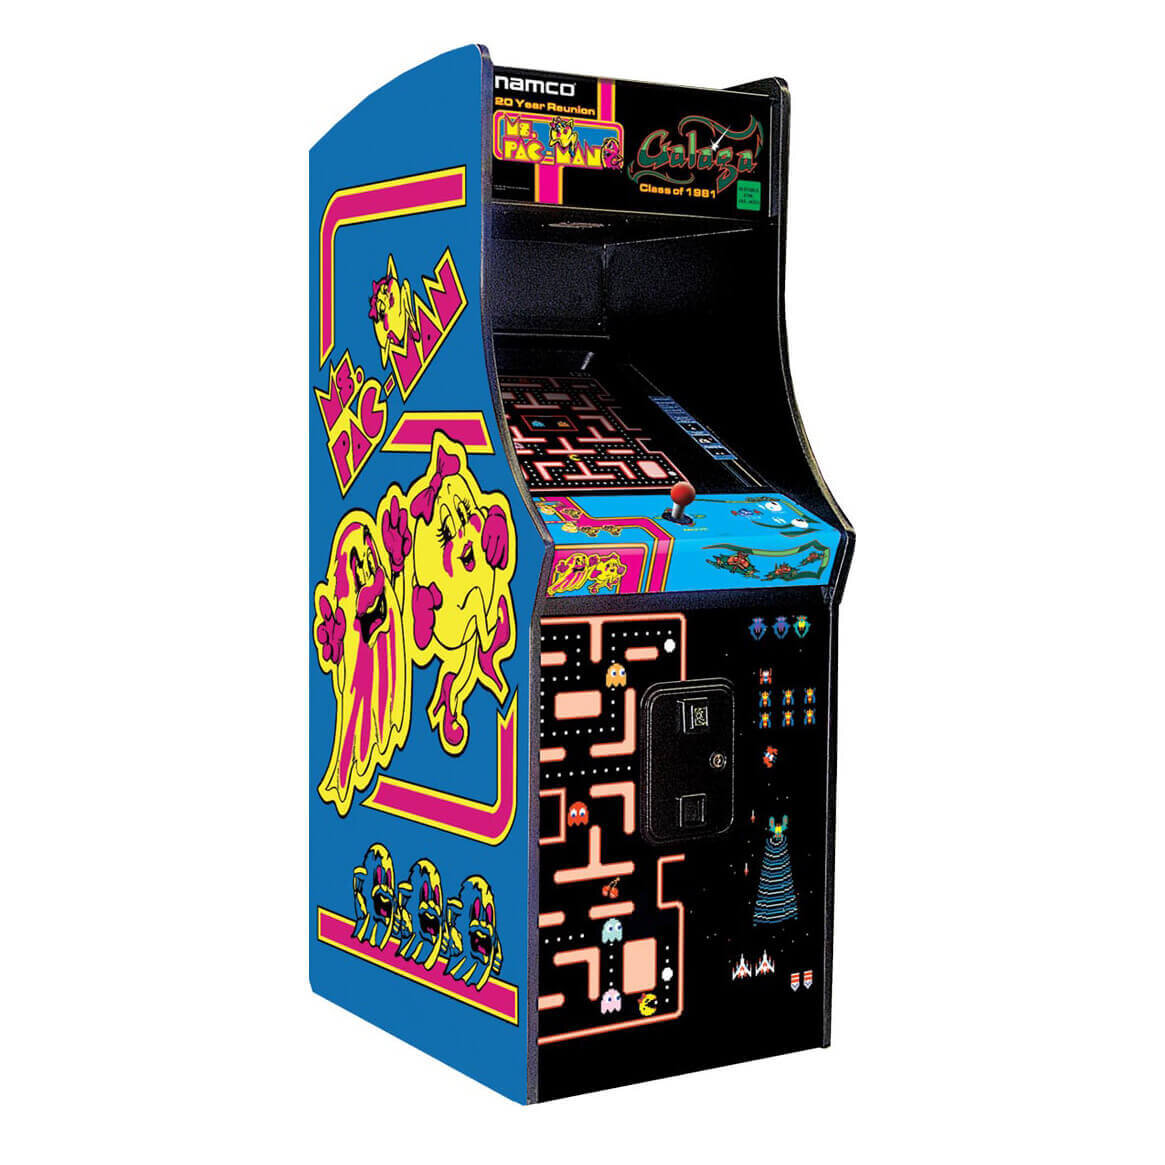 Mrs. Pacman / Galaga Combo   The combo over two of the classics in one cabinet!